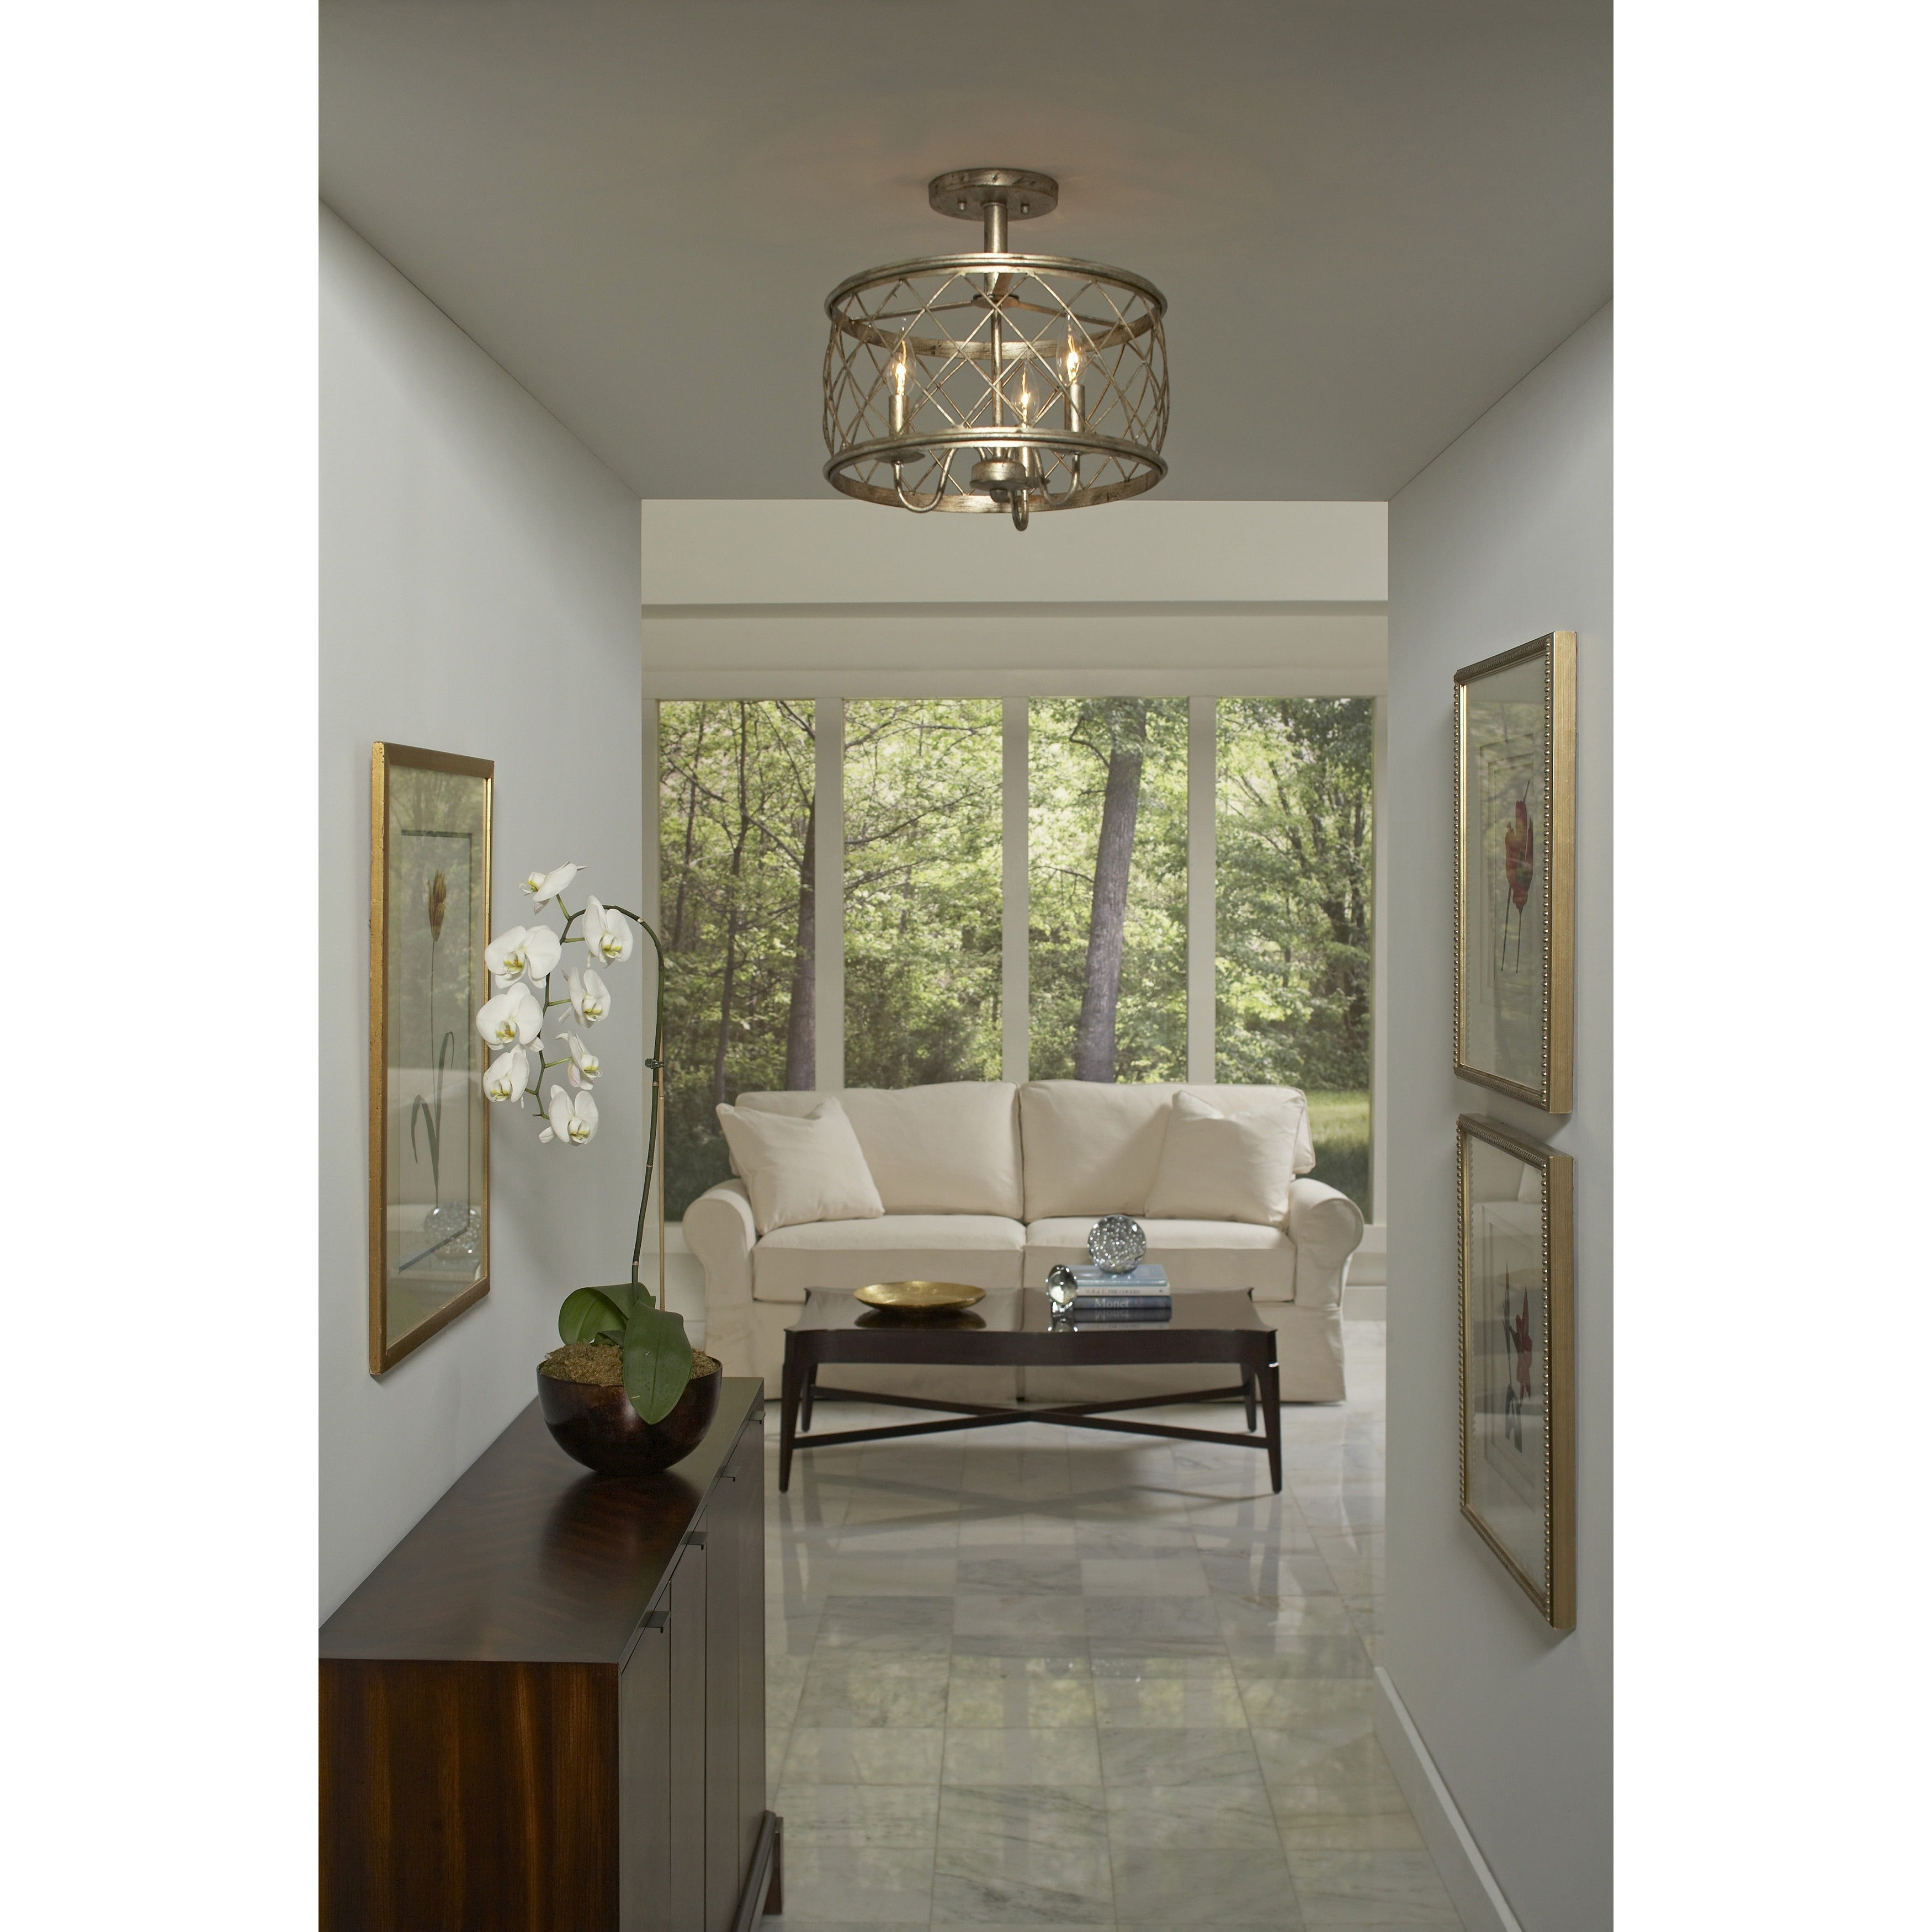 Quoizel dury century silver leaf finish medium semi flush mount quoizel dury century silver leaf finish medium semi flush mount light fixture free shipping today overstock 16211468 arubaitofo Image collections